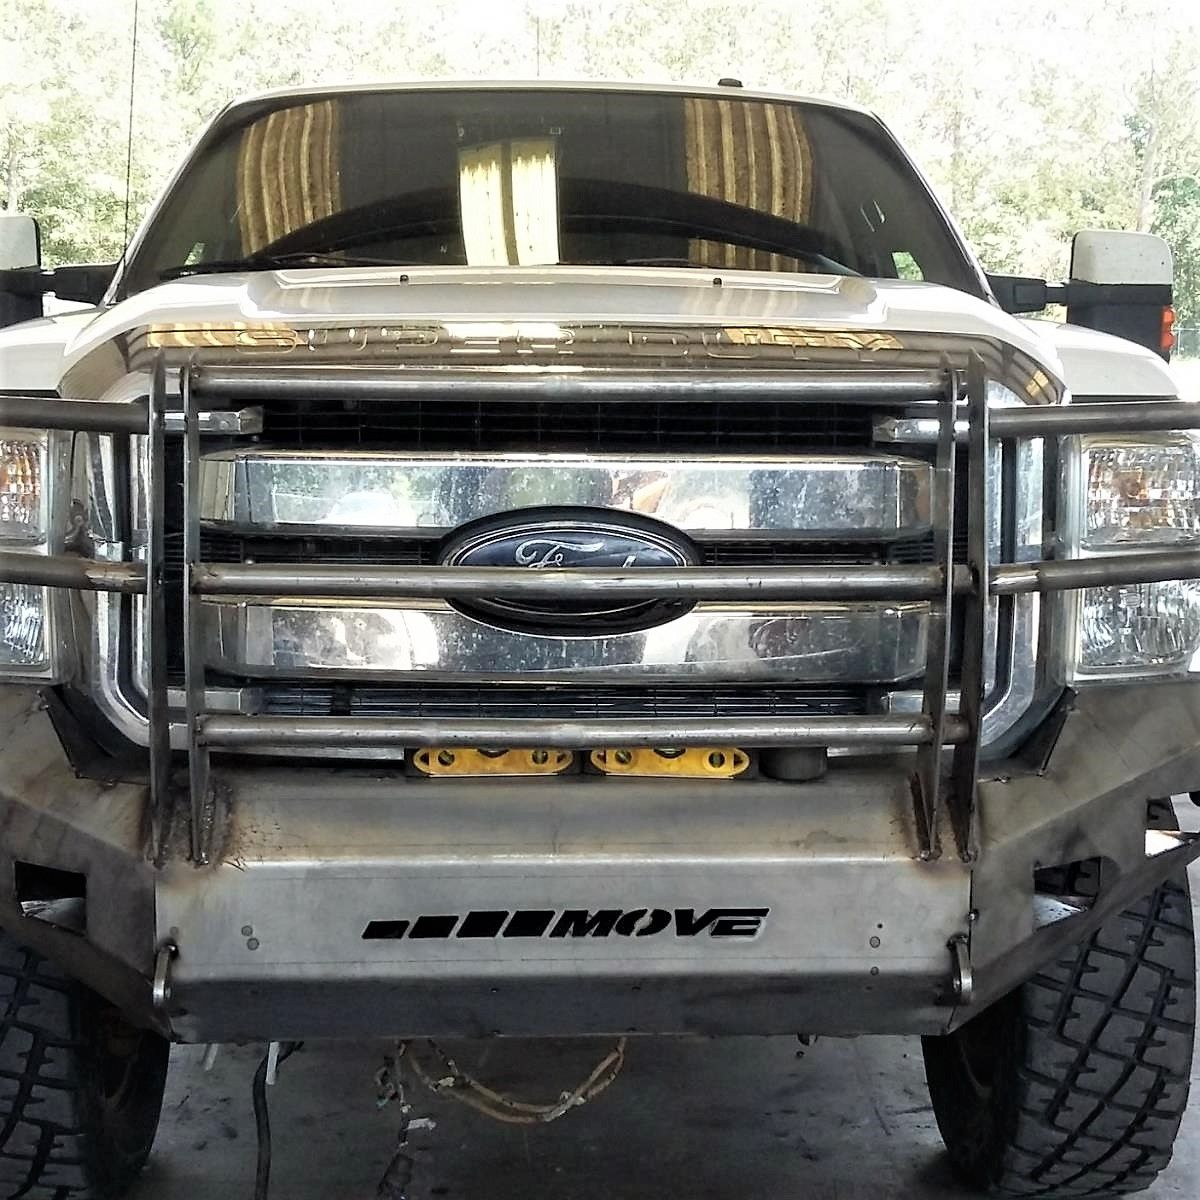 Customizable Wiy Front Standard Ford F250 F350 2011 2016 Truck 1830 Move Bumpers Work Truck Truck Bumpers Farm Trucks